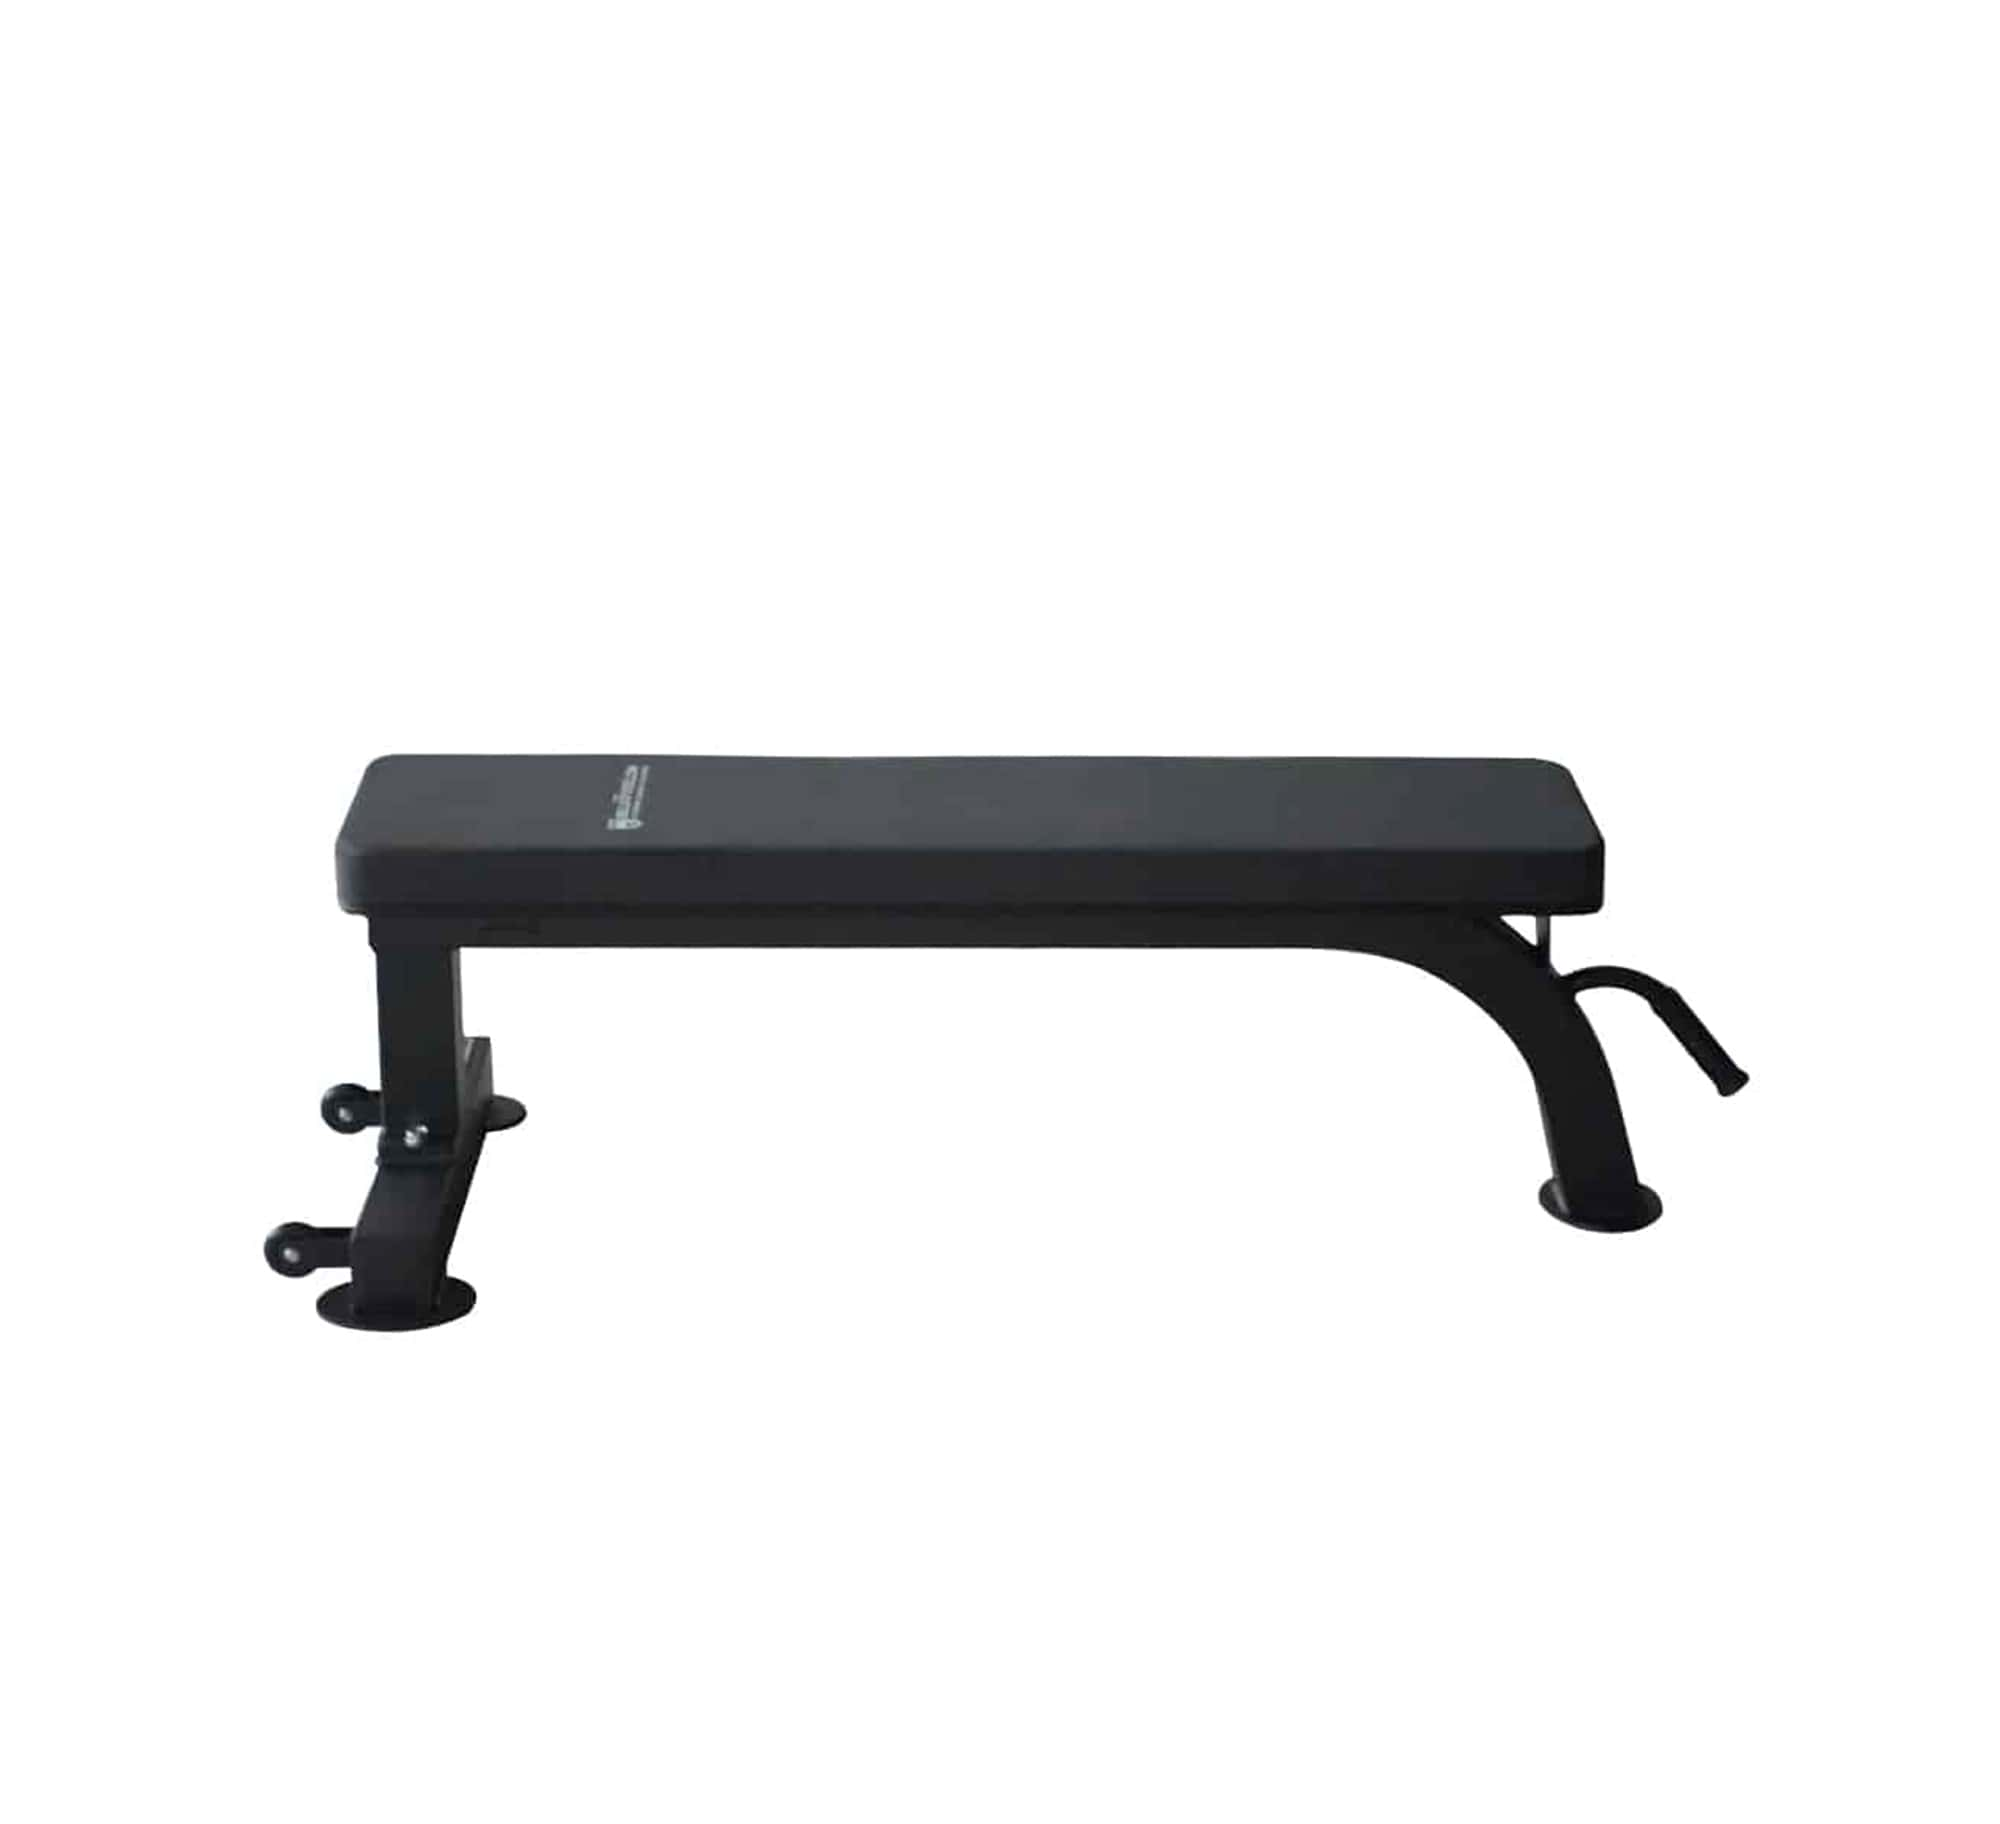 mighty grip flat bench 2.0